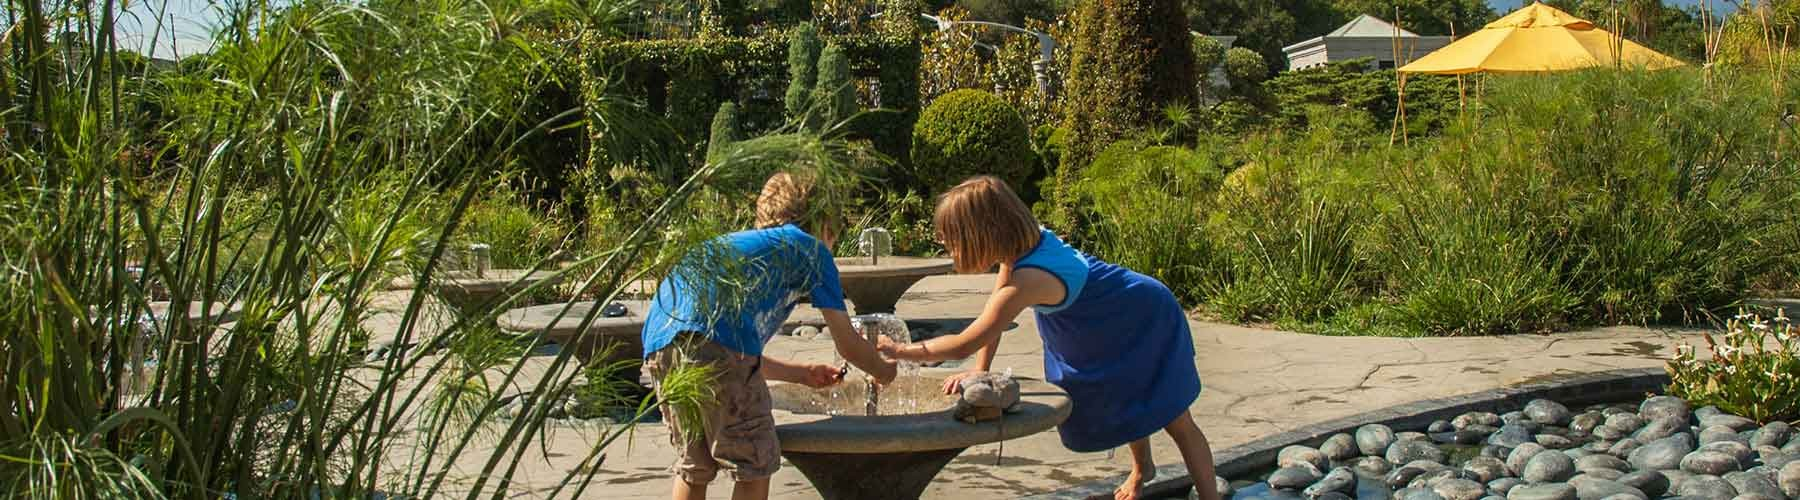 Kids playing in the Childrens Garden